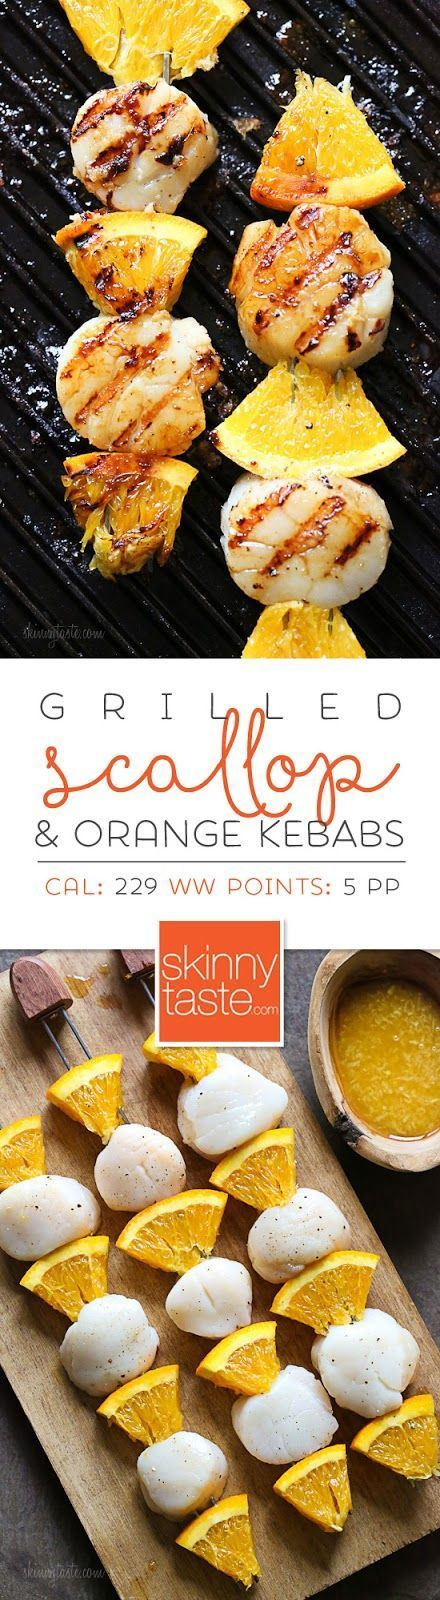 Grilled Scallop and Orange Kebabs with Honey-Ginger Glaze –5 ingredients, ready in 15 minutes!